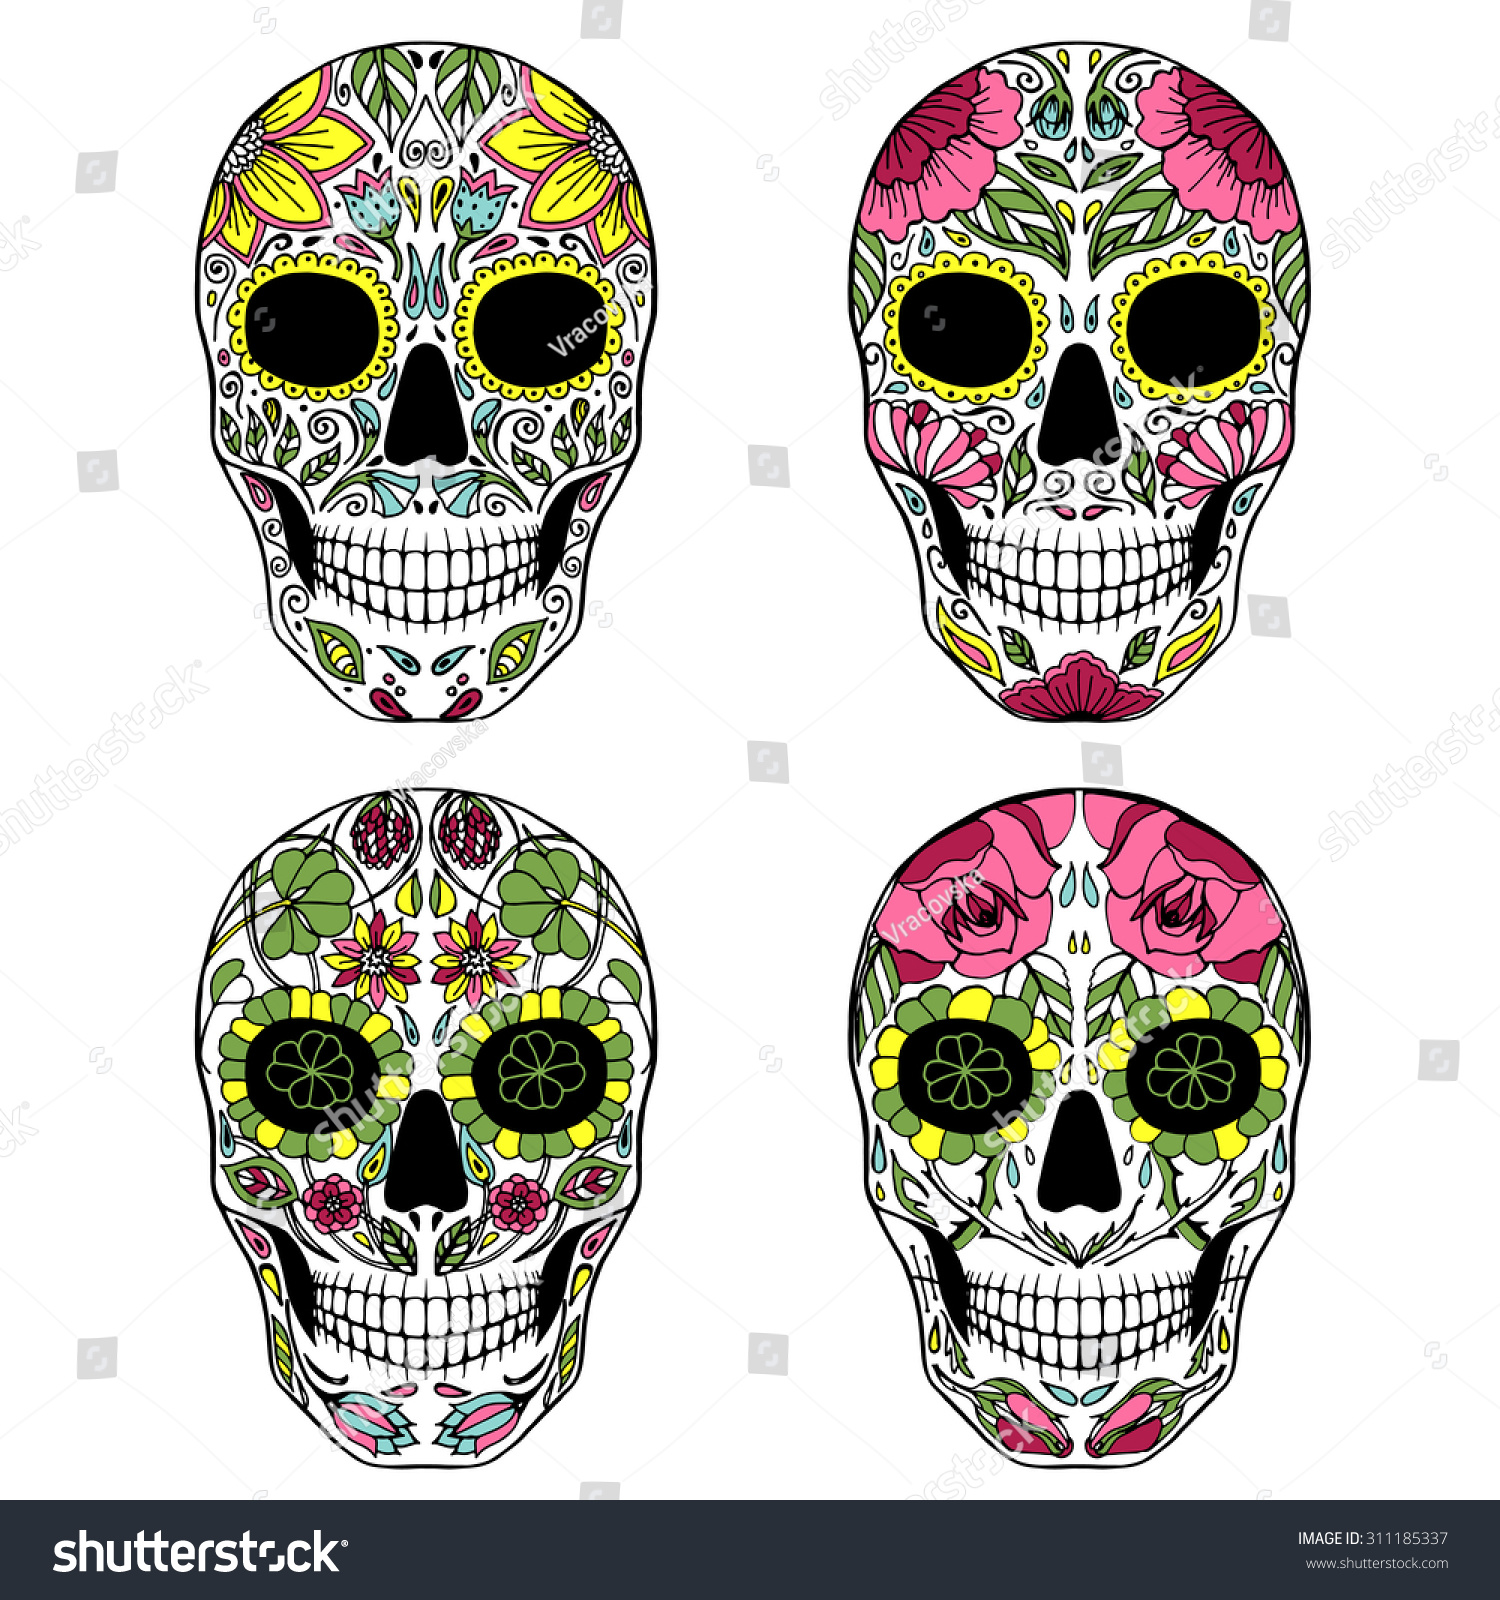 Vector Illustration Of Sugar Skull Mexican Symbol For Day Of The